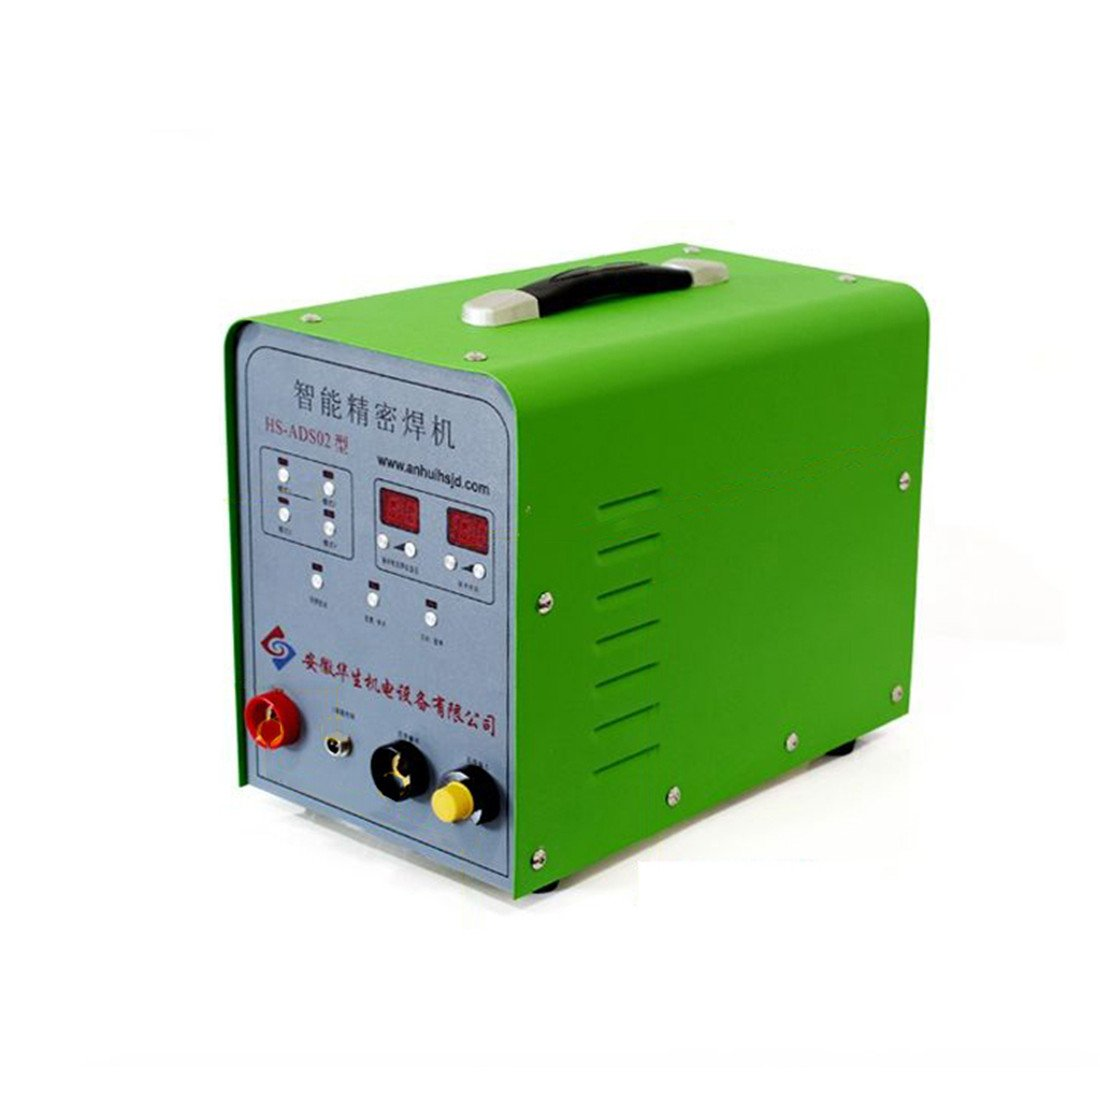 Mould Repair Welder Interlligent Precision Welding Machine Cold Welding Machine Electro Spark Deposition ESD for Stainless Steel Sheet Aluminum Repair Metal Mold